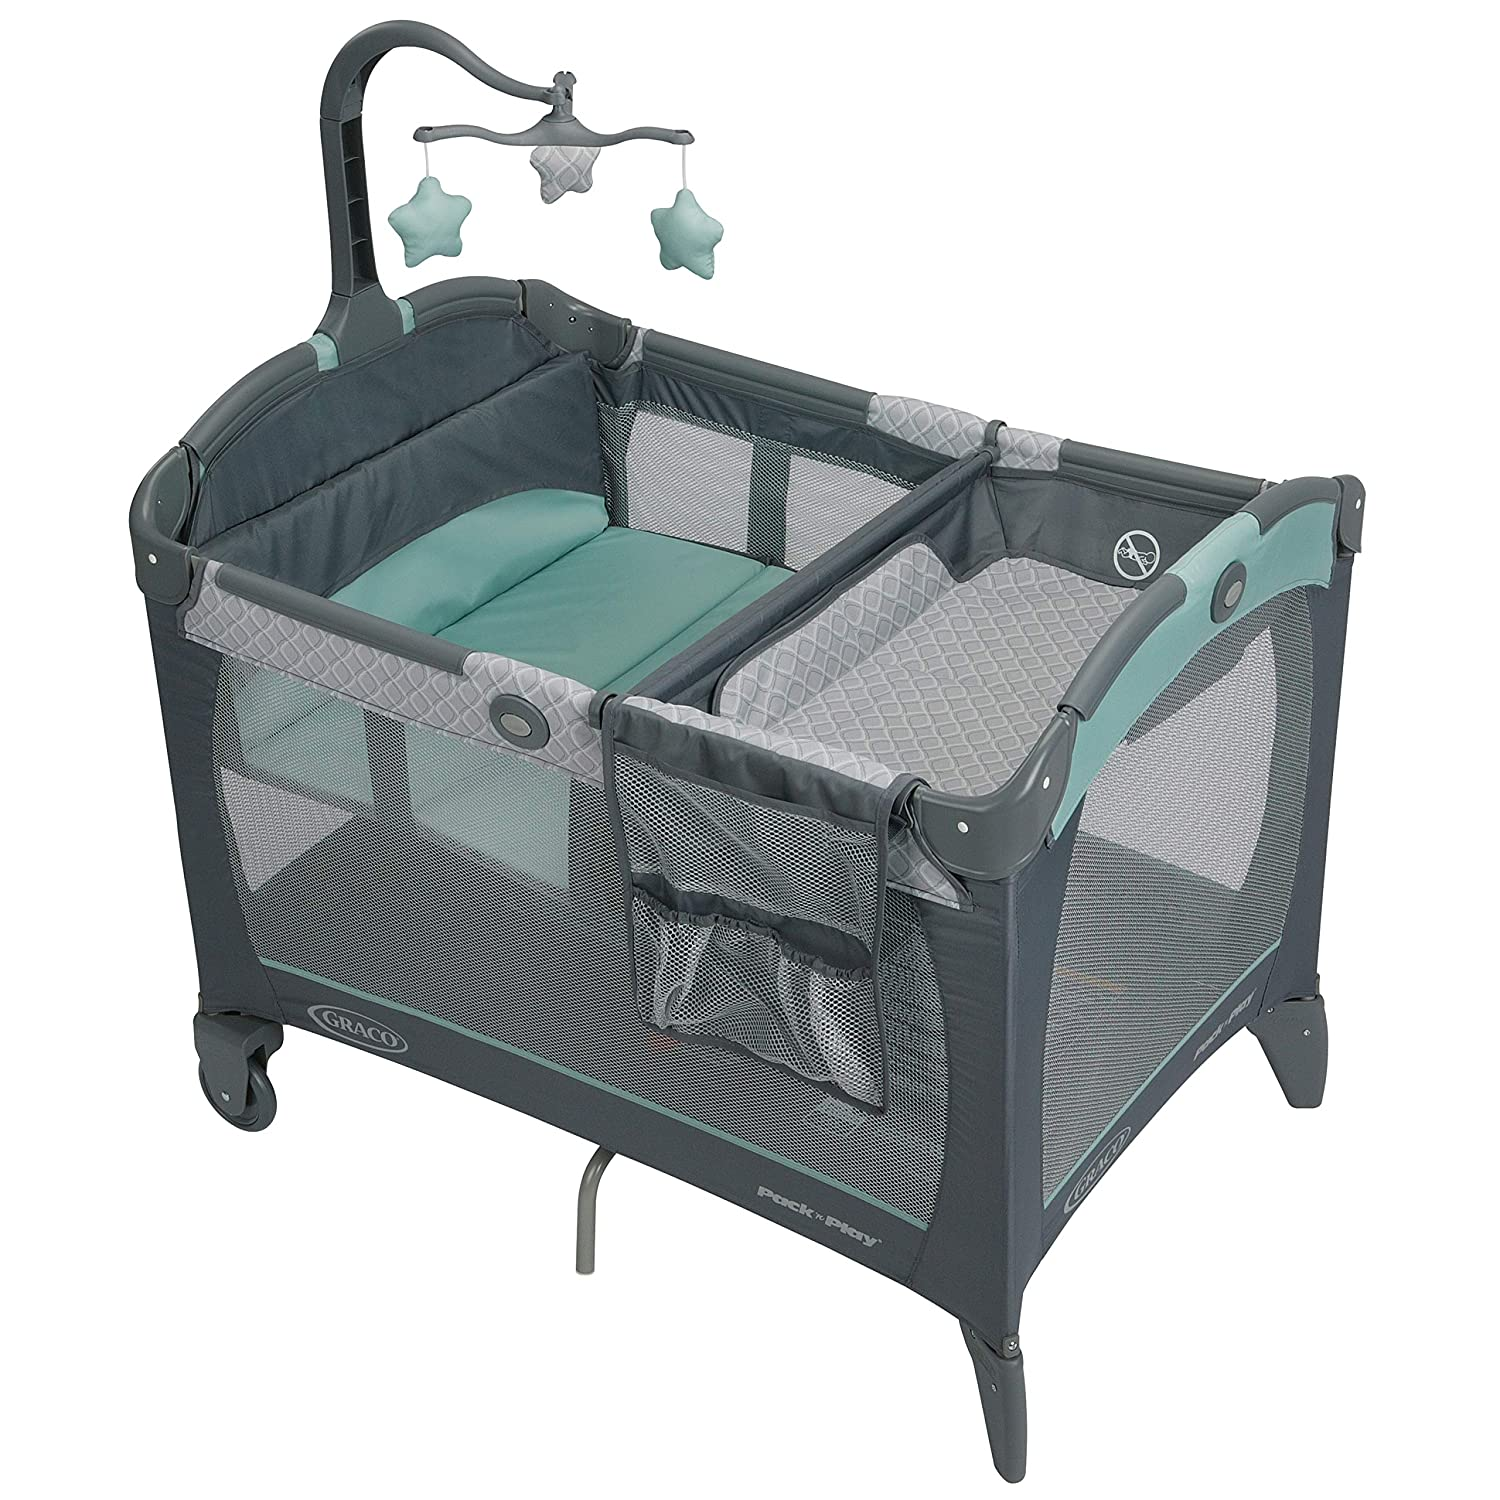 Graco Pack 'n Play Change 'n Carry Playard, Manor by Graco